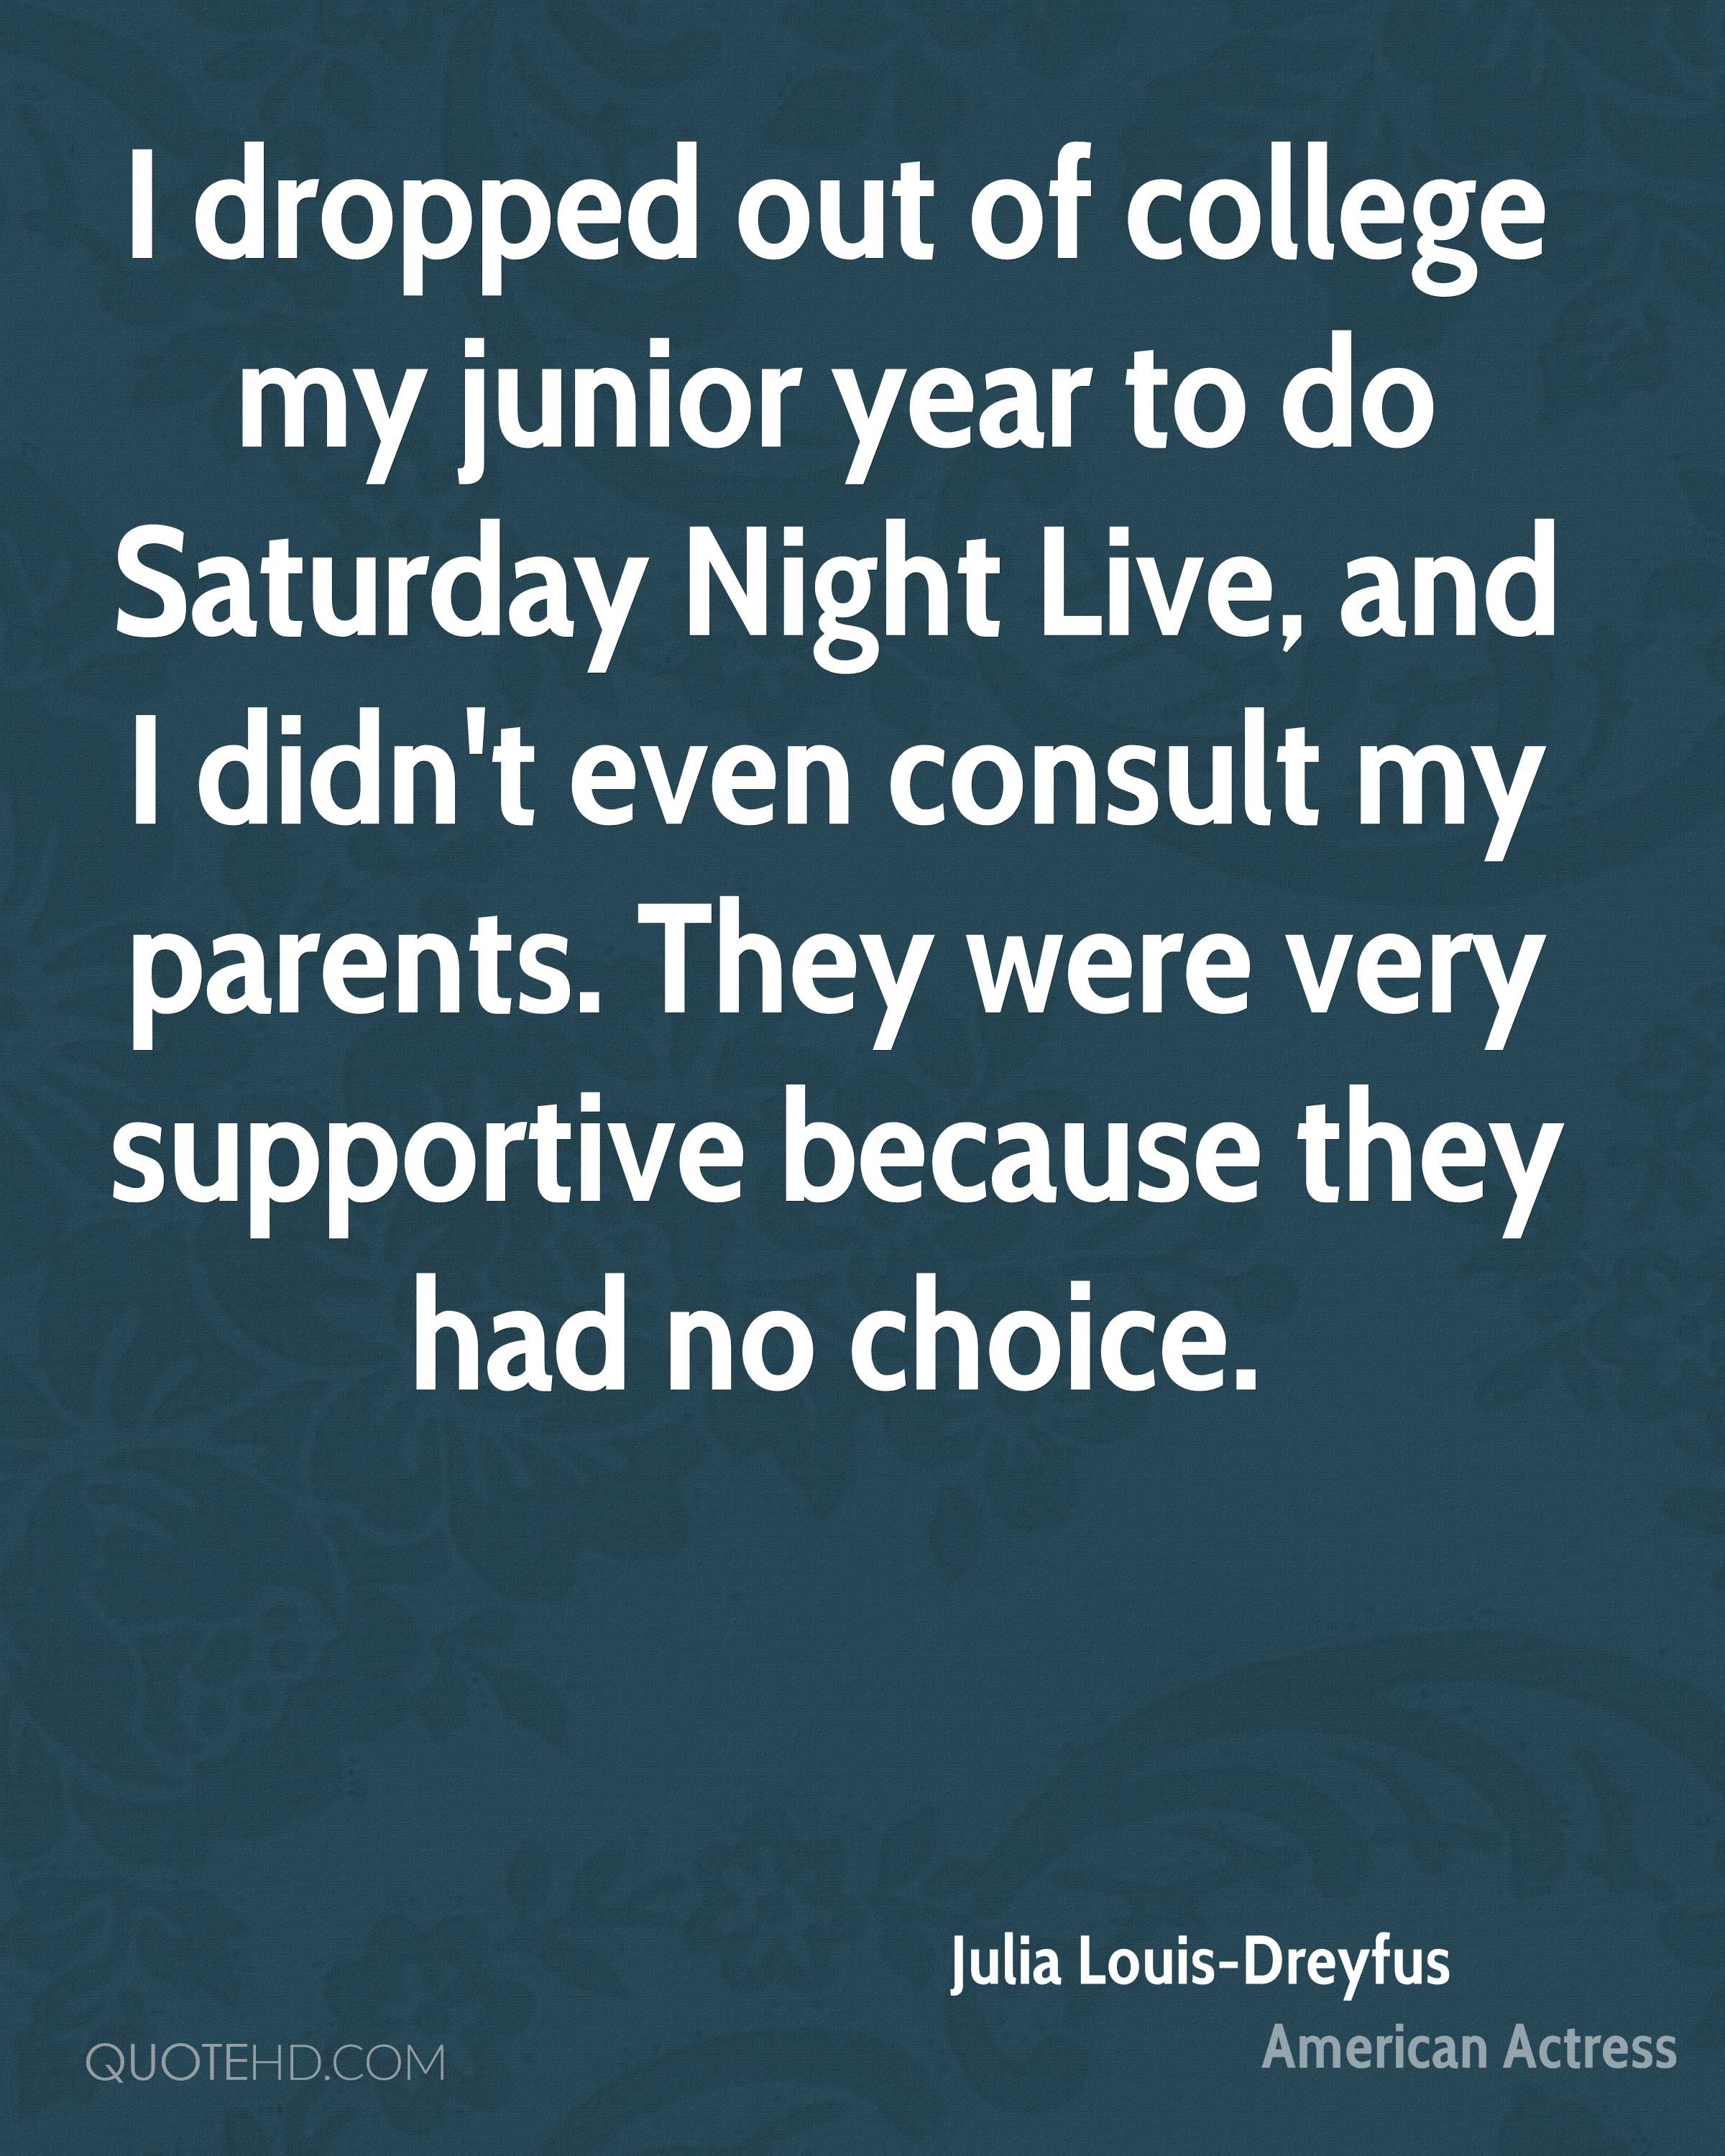 I dropped out of college my junior year to do Saturday Night Live, and I didn't even consult my parents. They were very supportive because they had no choice.